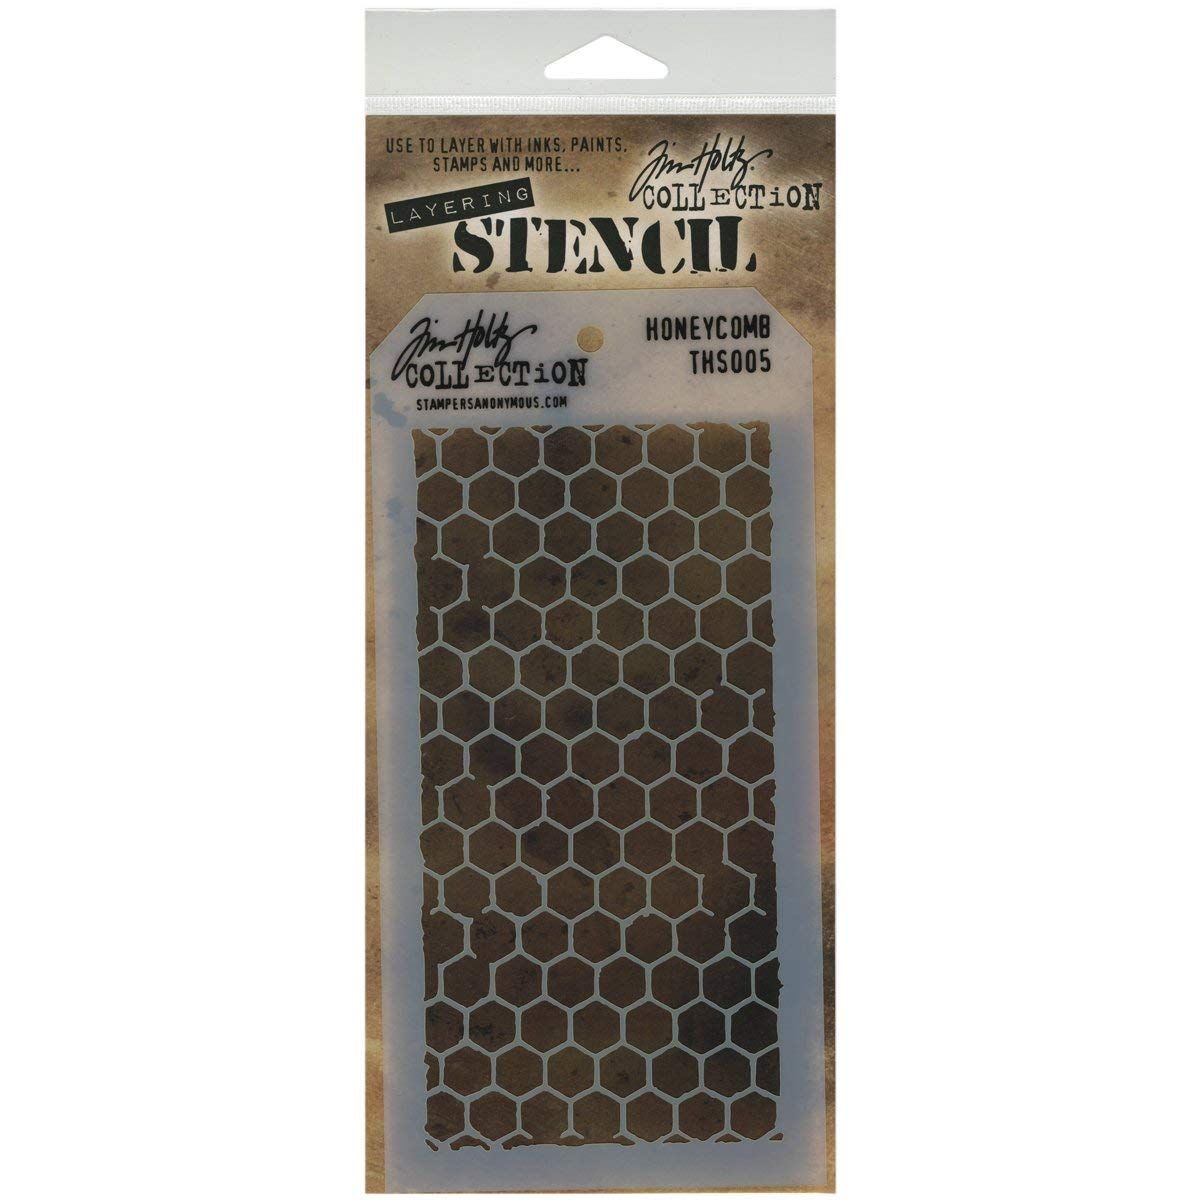 Stampers Anonymous Tim Holtz Layered Stencil 4.125-inch x 8.5-inch Honeycomb